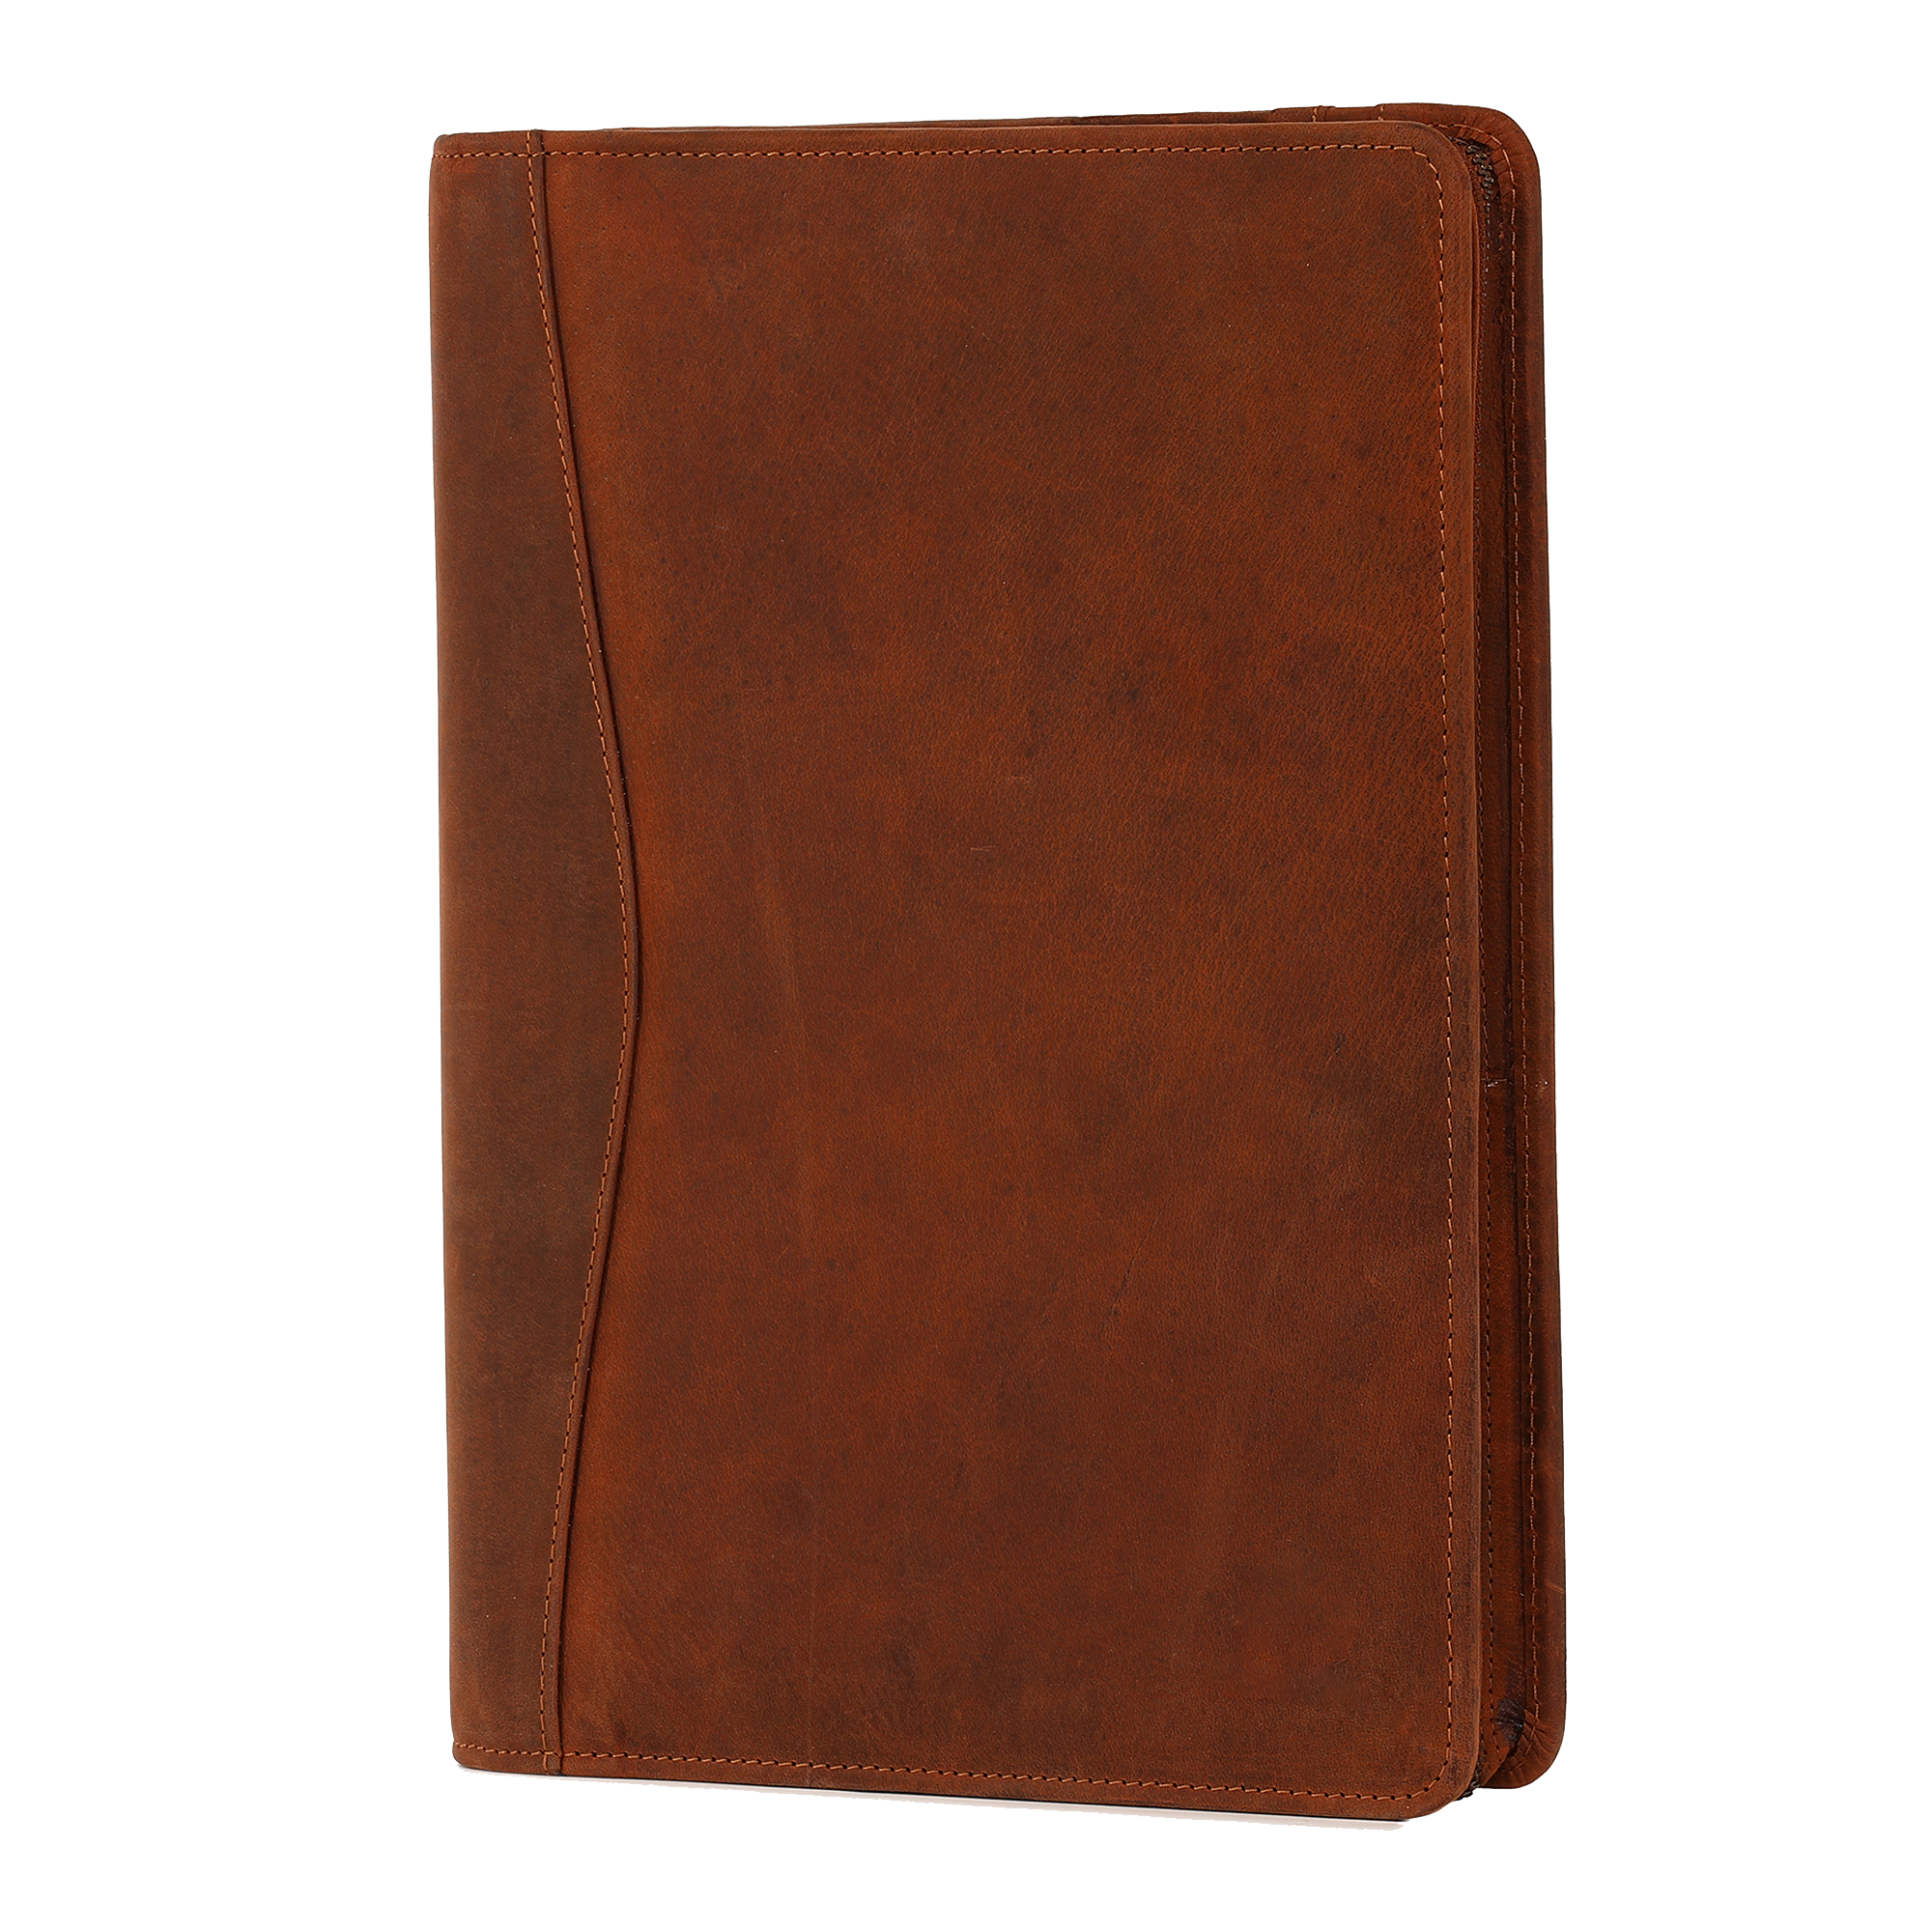 Premium Quality Business Cards Pen Writing Pad Portfolio Professional Legal Document Holder For Men Women Pure Leather Padfolio